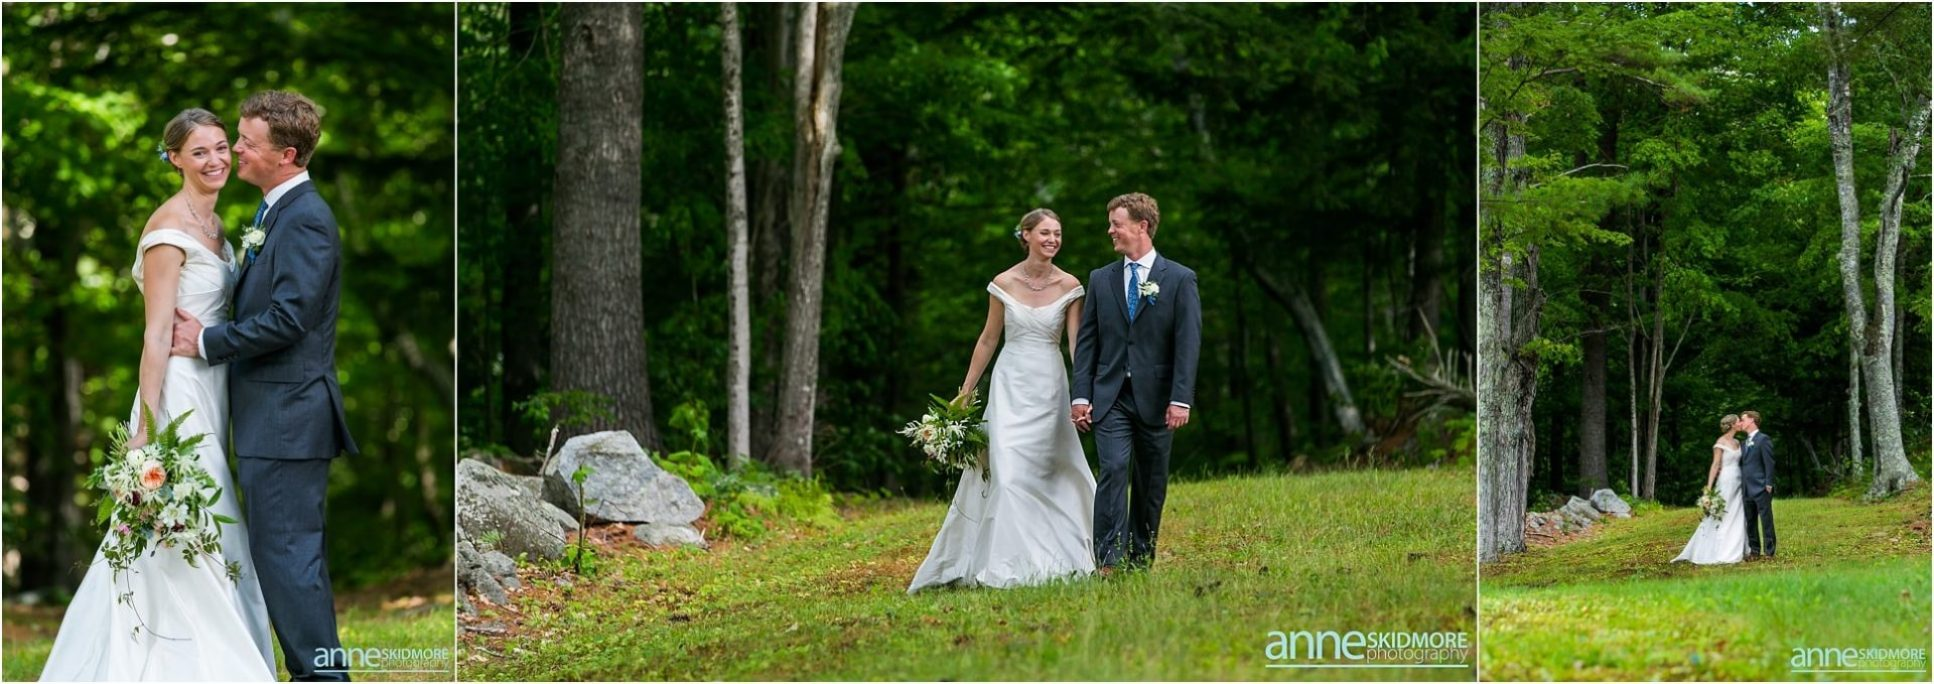 new_hampshire_wedding_photography_0028